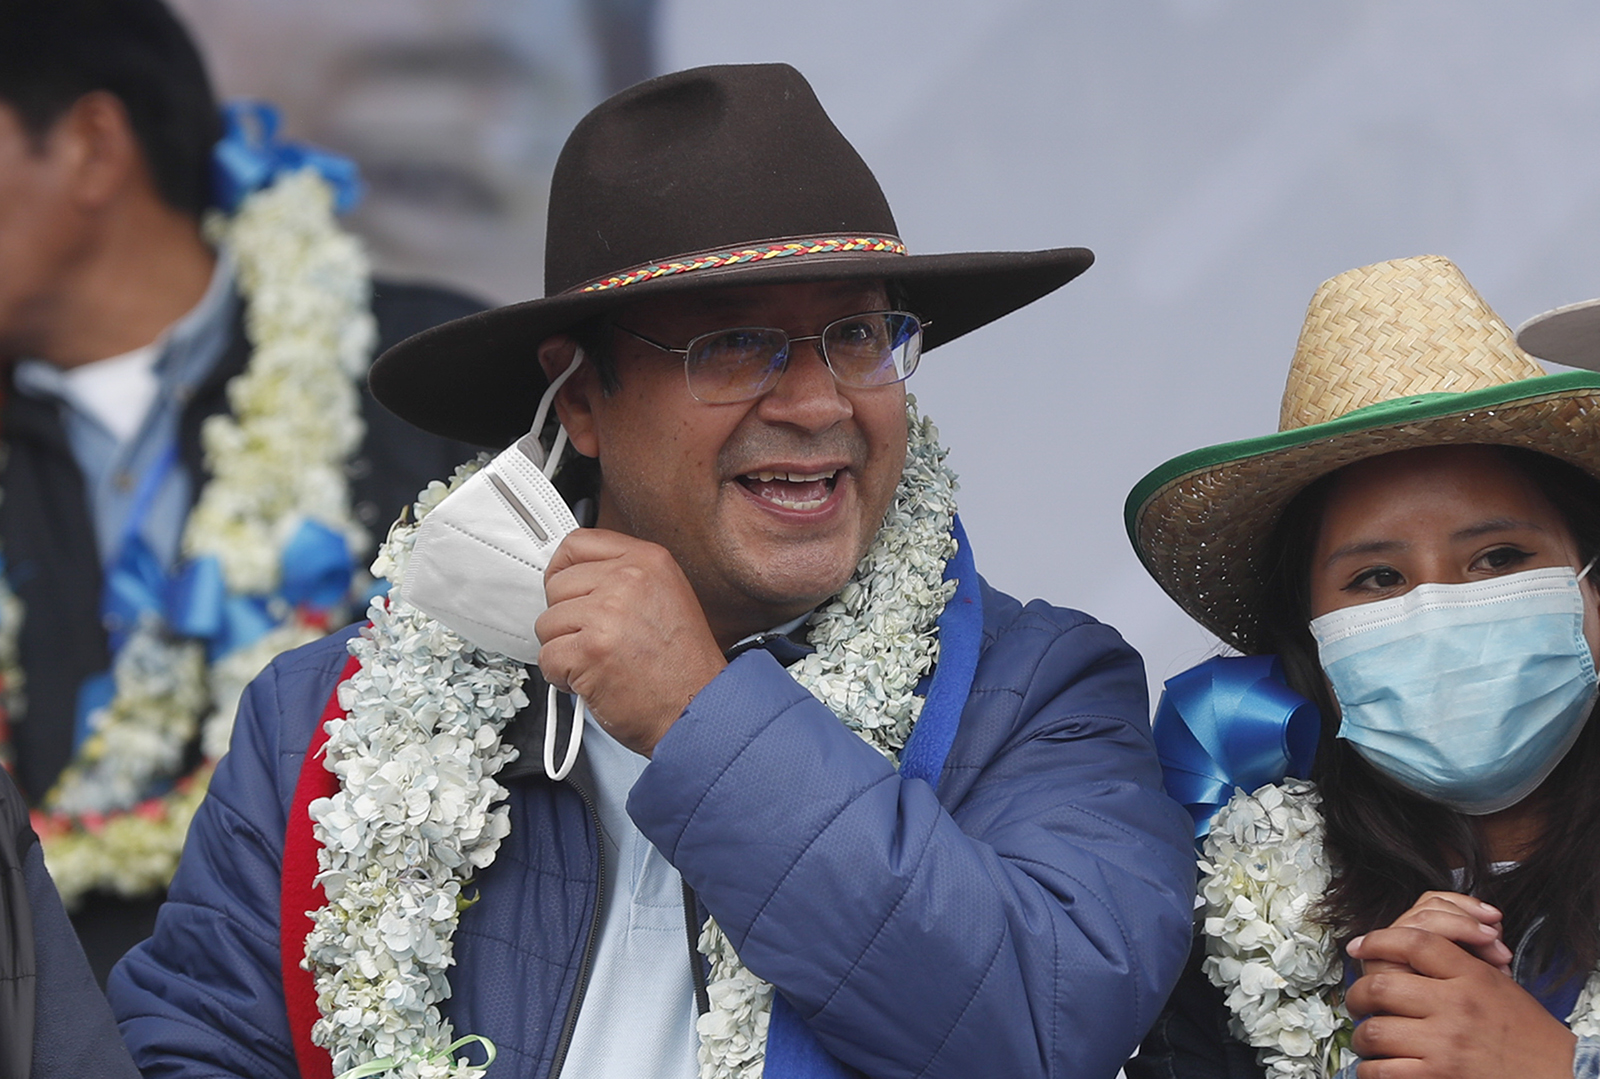 President-elect Luis Arce smiles during his victory party after a final official vote count released yesterday declared him the winner of the presidential election, in El Alto, Bolivia, on Saturday, October 24.